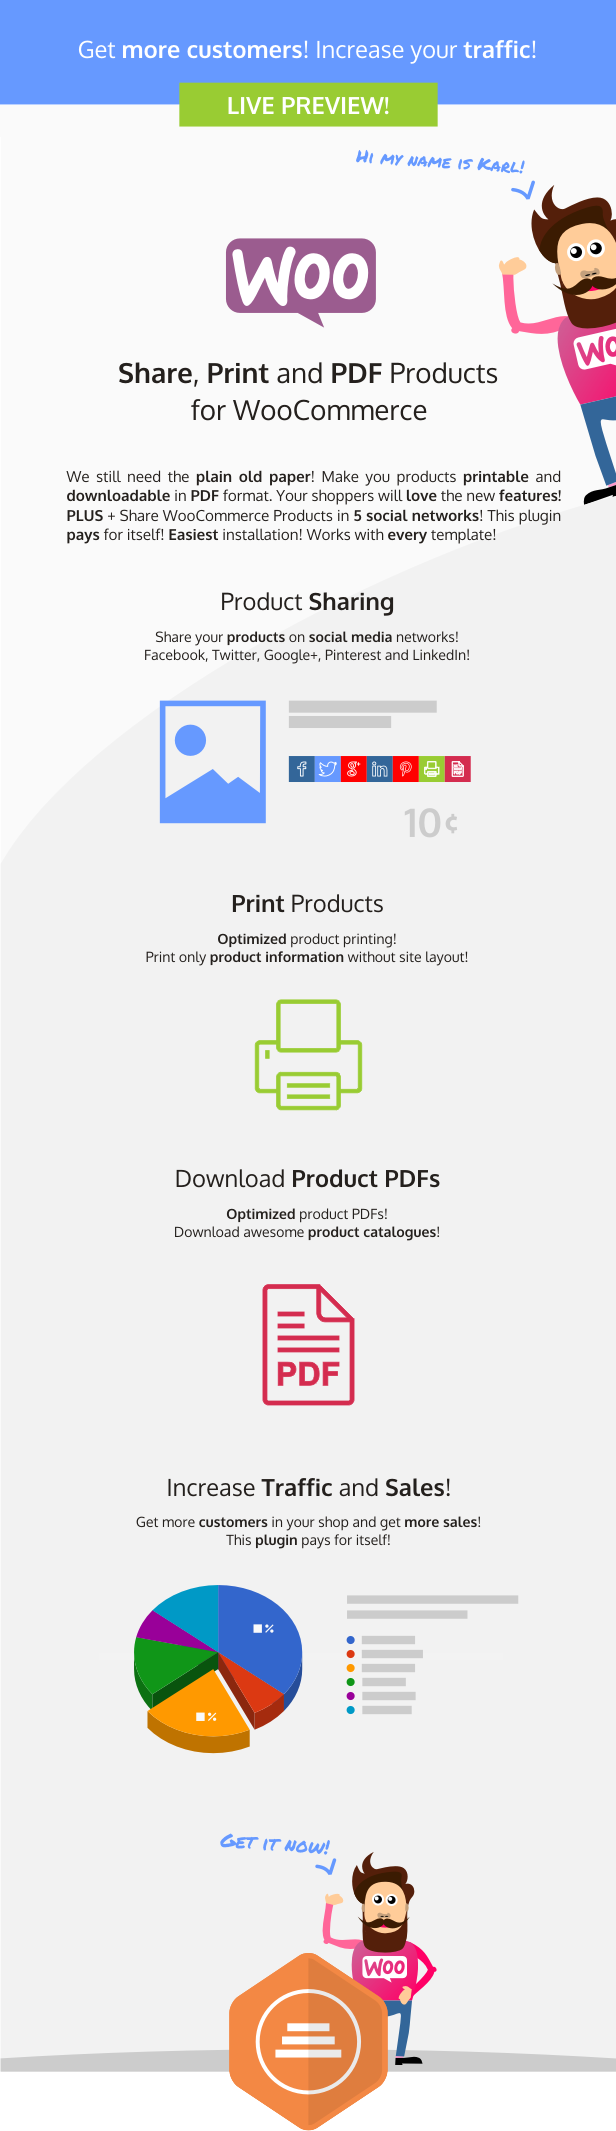 Share, Print and PDF Products for WooCommerce - 2